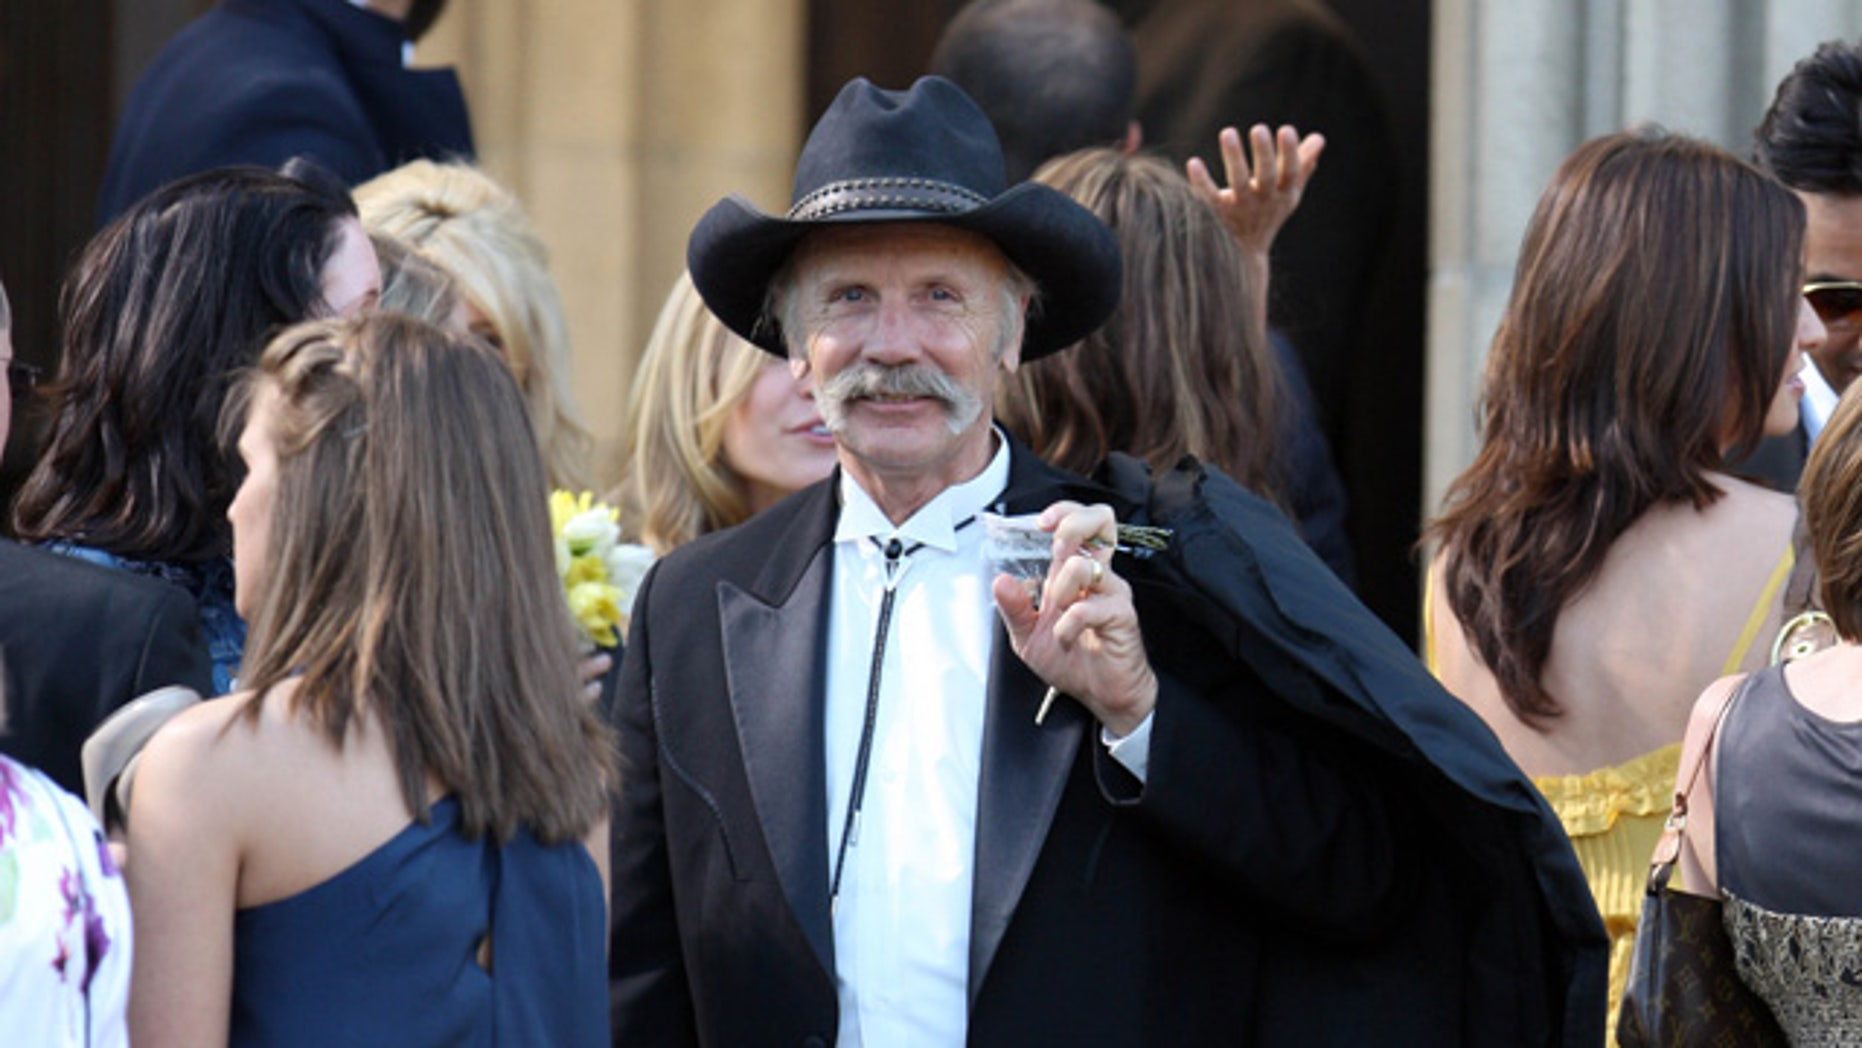 April 25, 2009. Heidi Montag's father Bob Montag at his daughter's wedding.